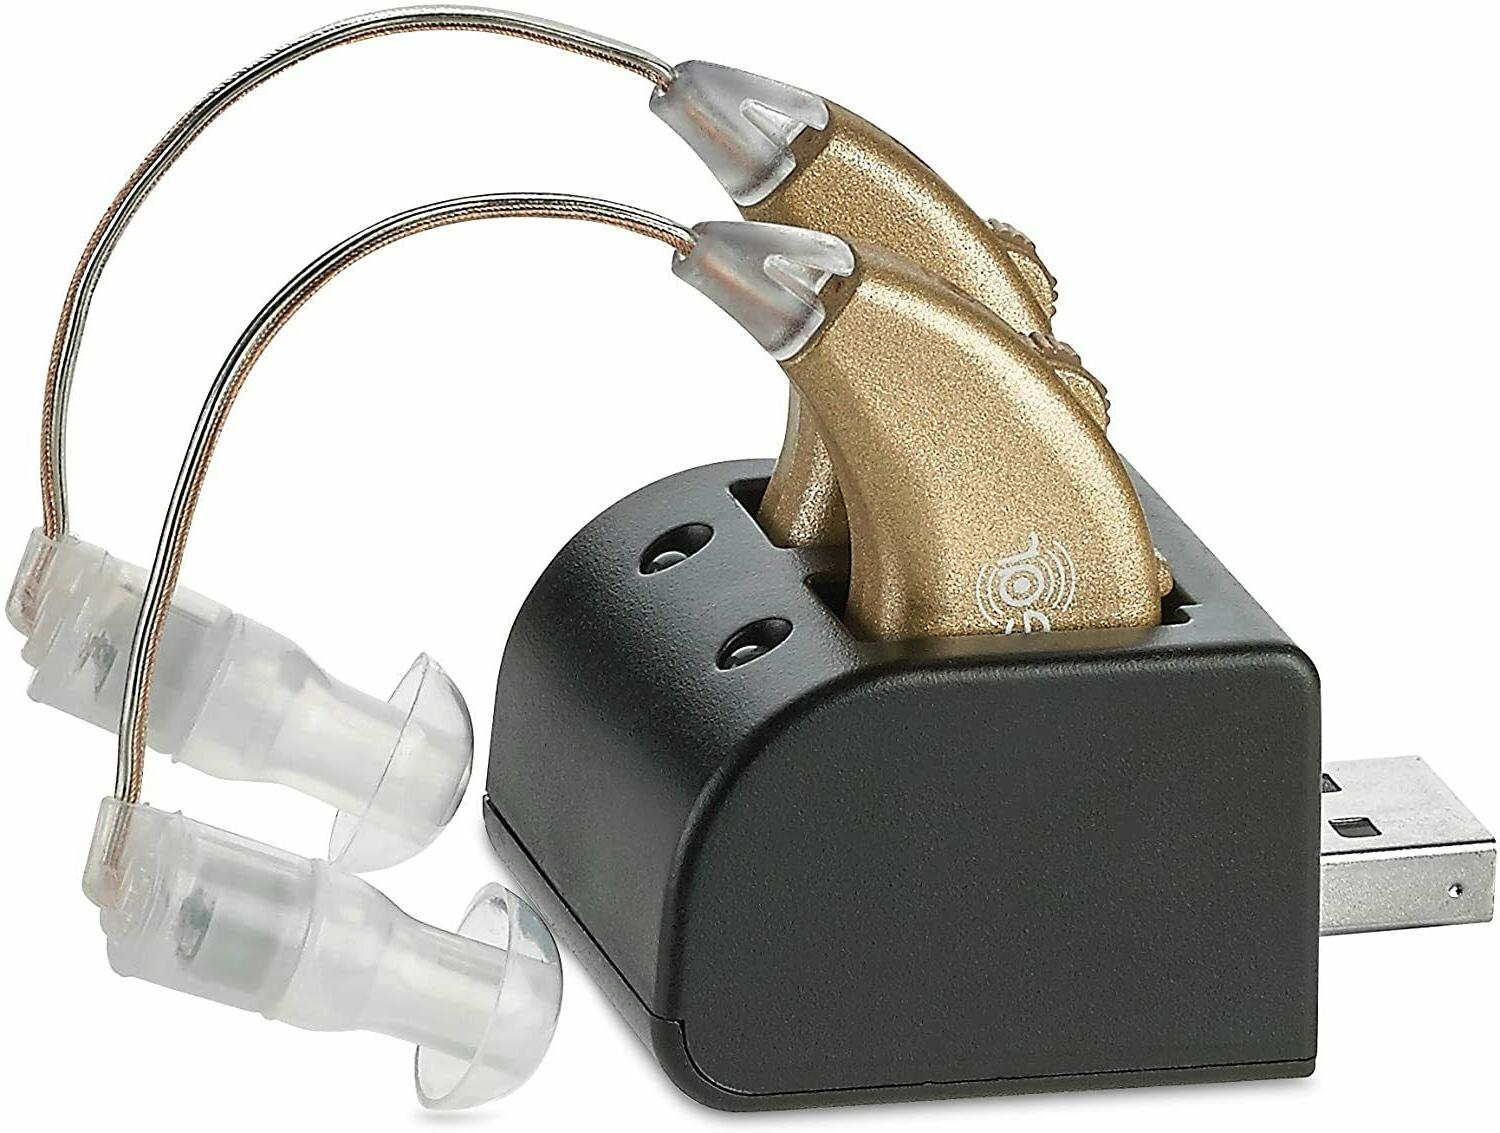 2 digital hearing aids usb rechargeable pair